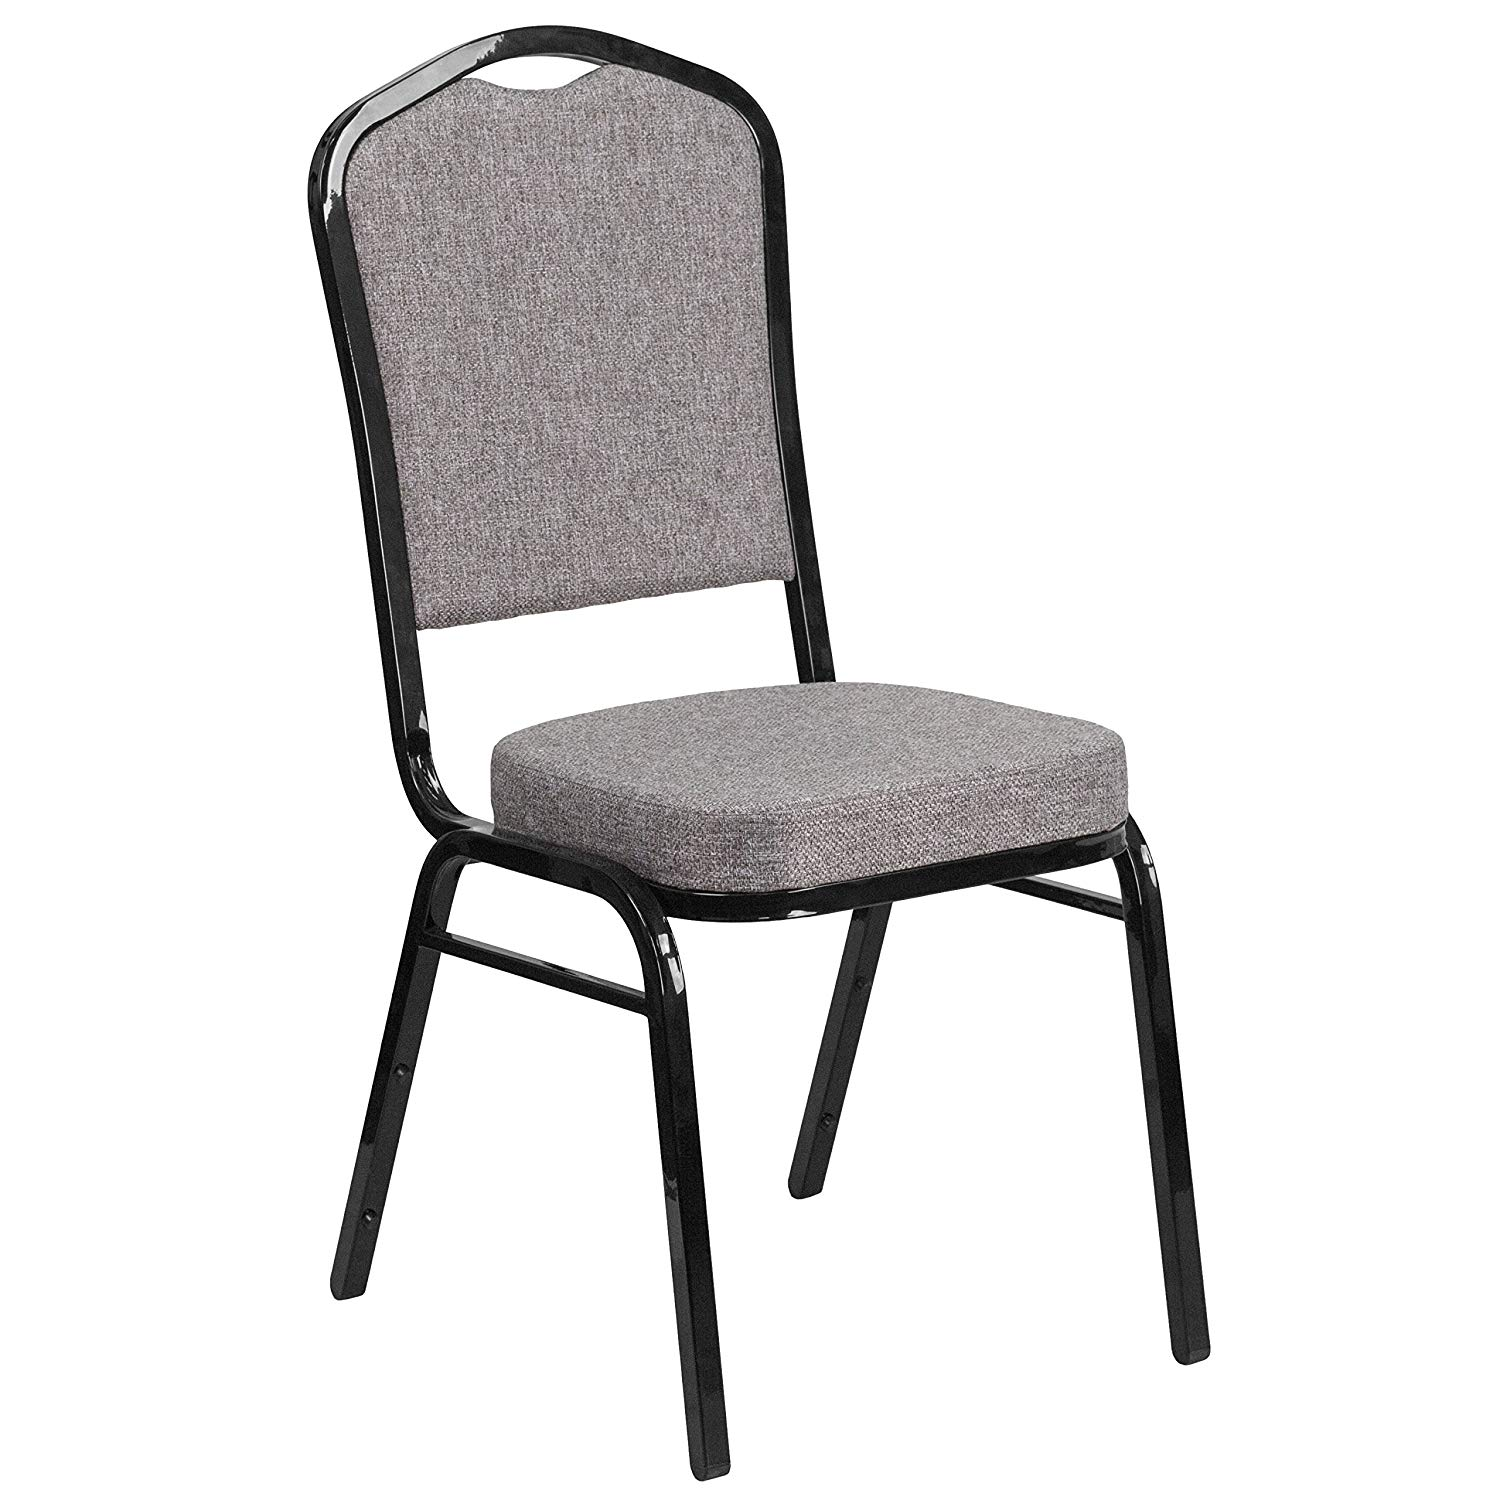 #40 - CROWN BACK BANQUET CHAIR WITH GRAY FABRIC